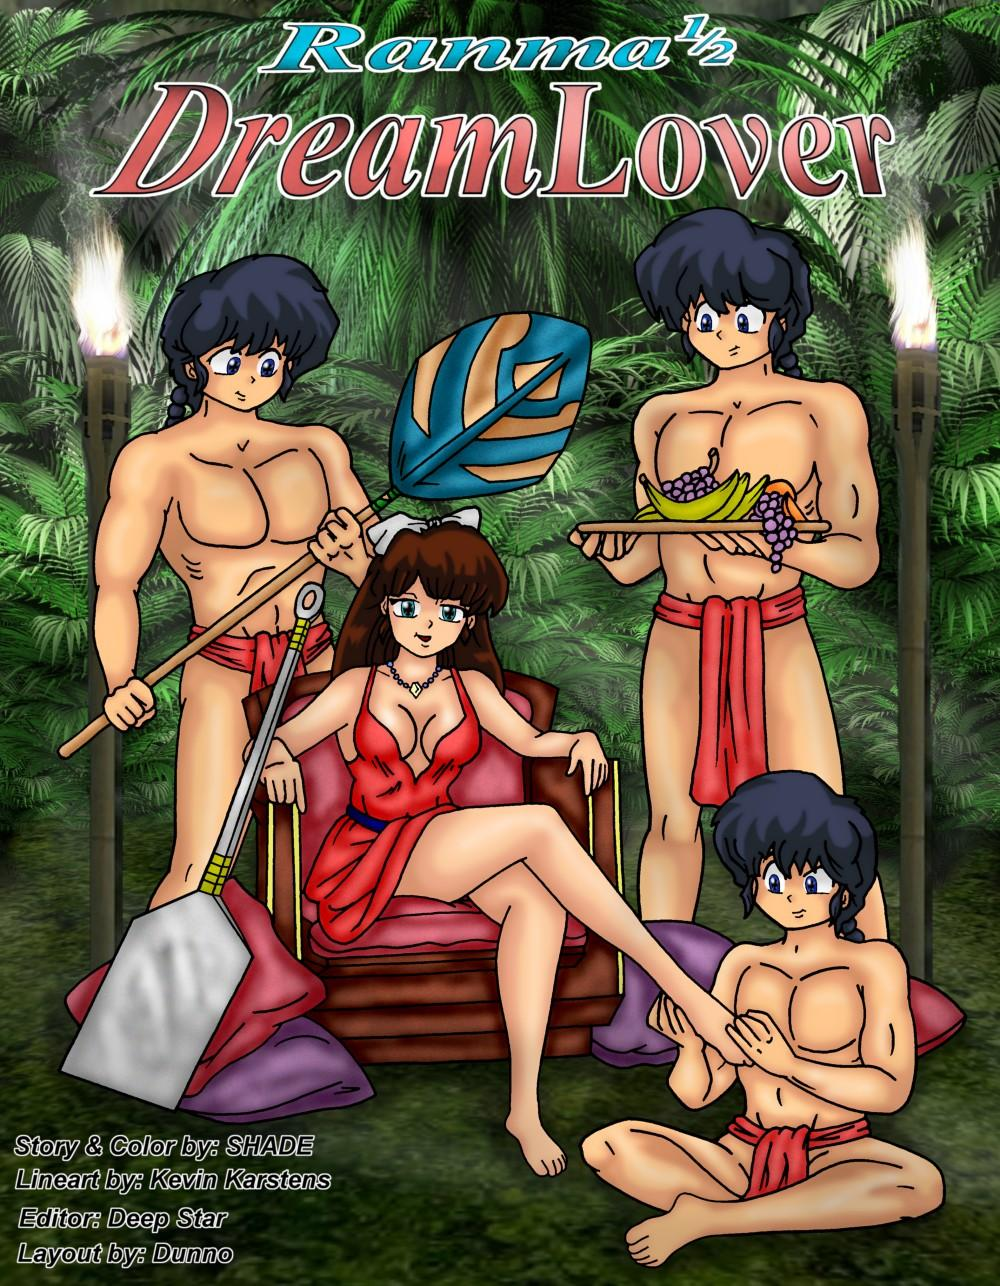 Ranma's DreamLover